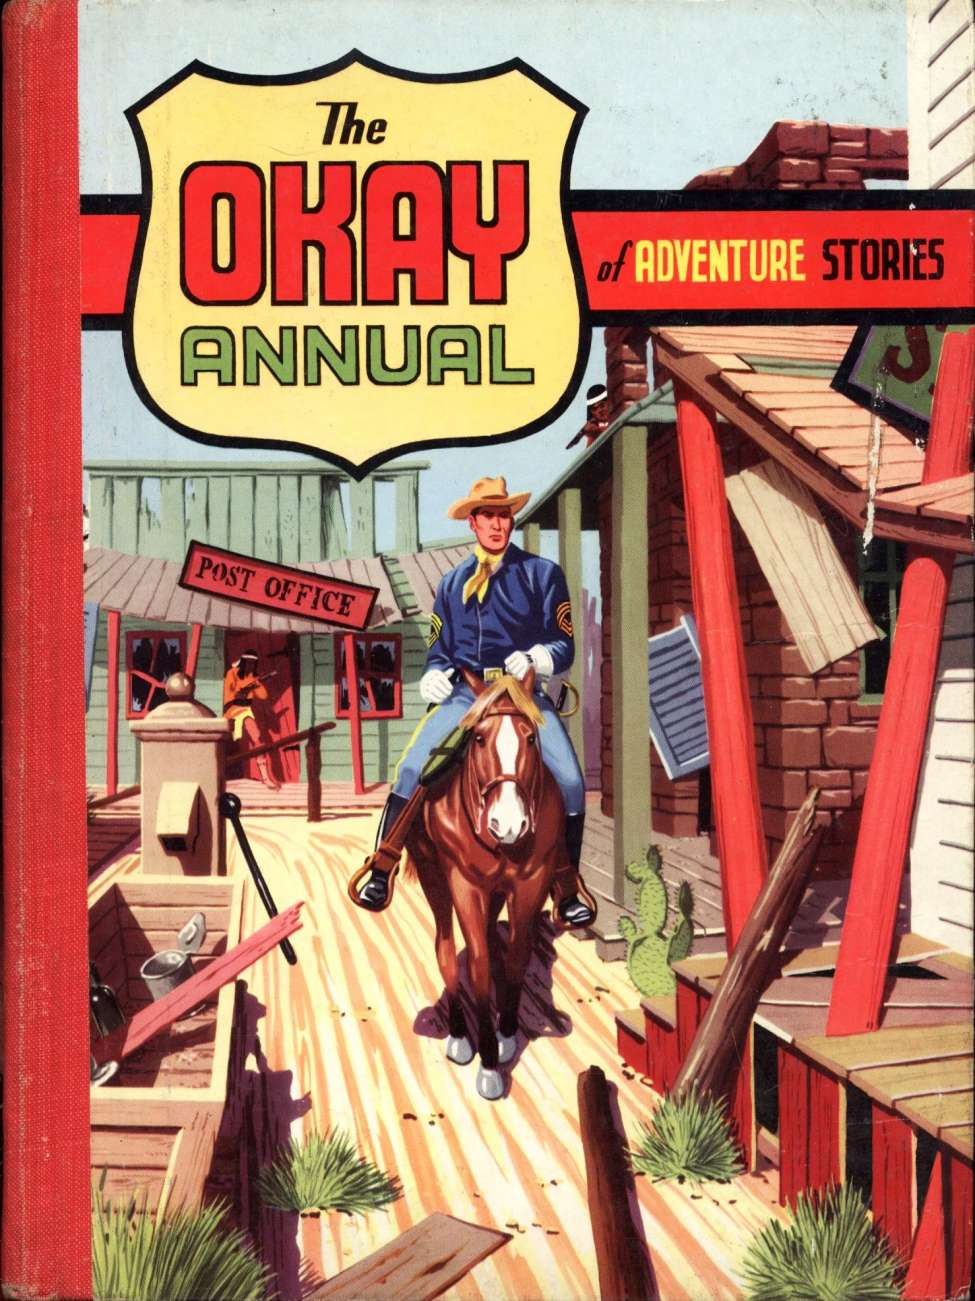 Comic Book Cover For Okay Annual of Adventure Stories 2